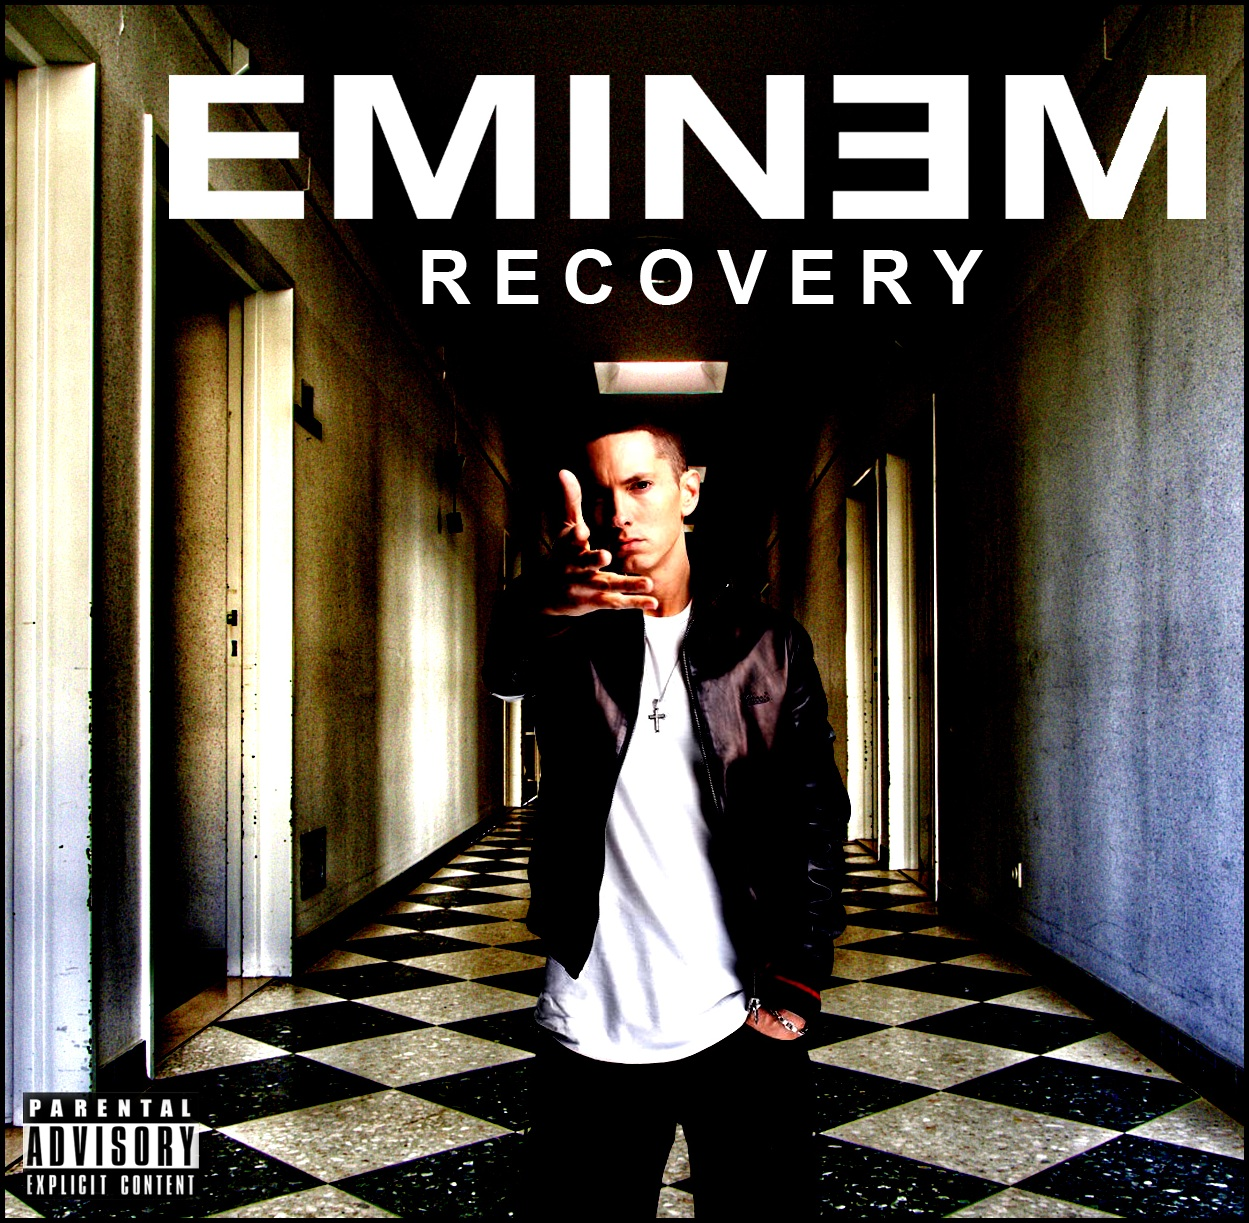 Download all eminem mp3 songs free including not afraid and love.